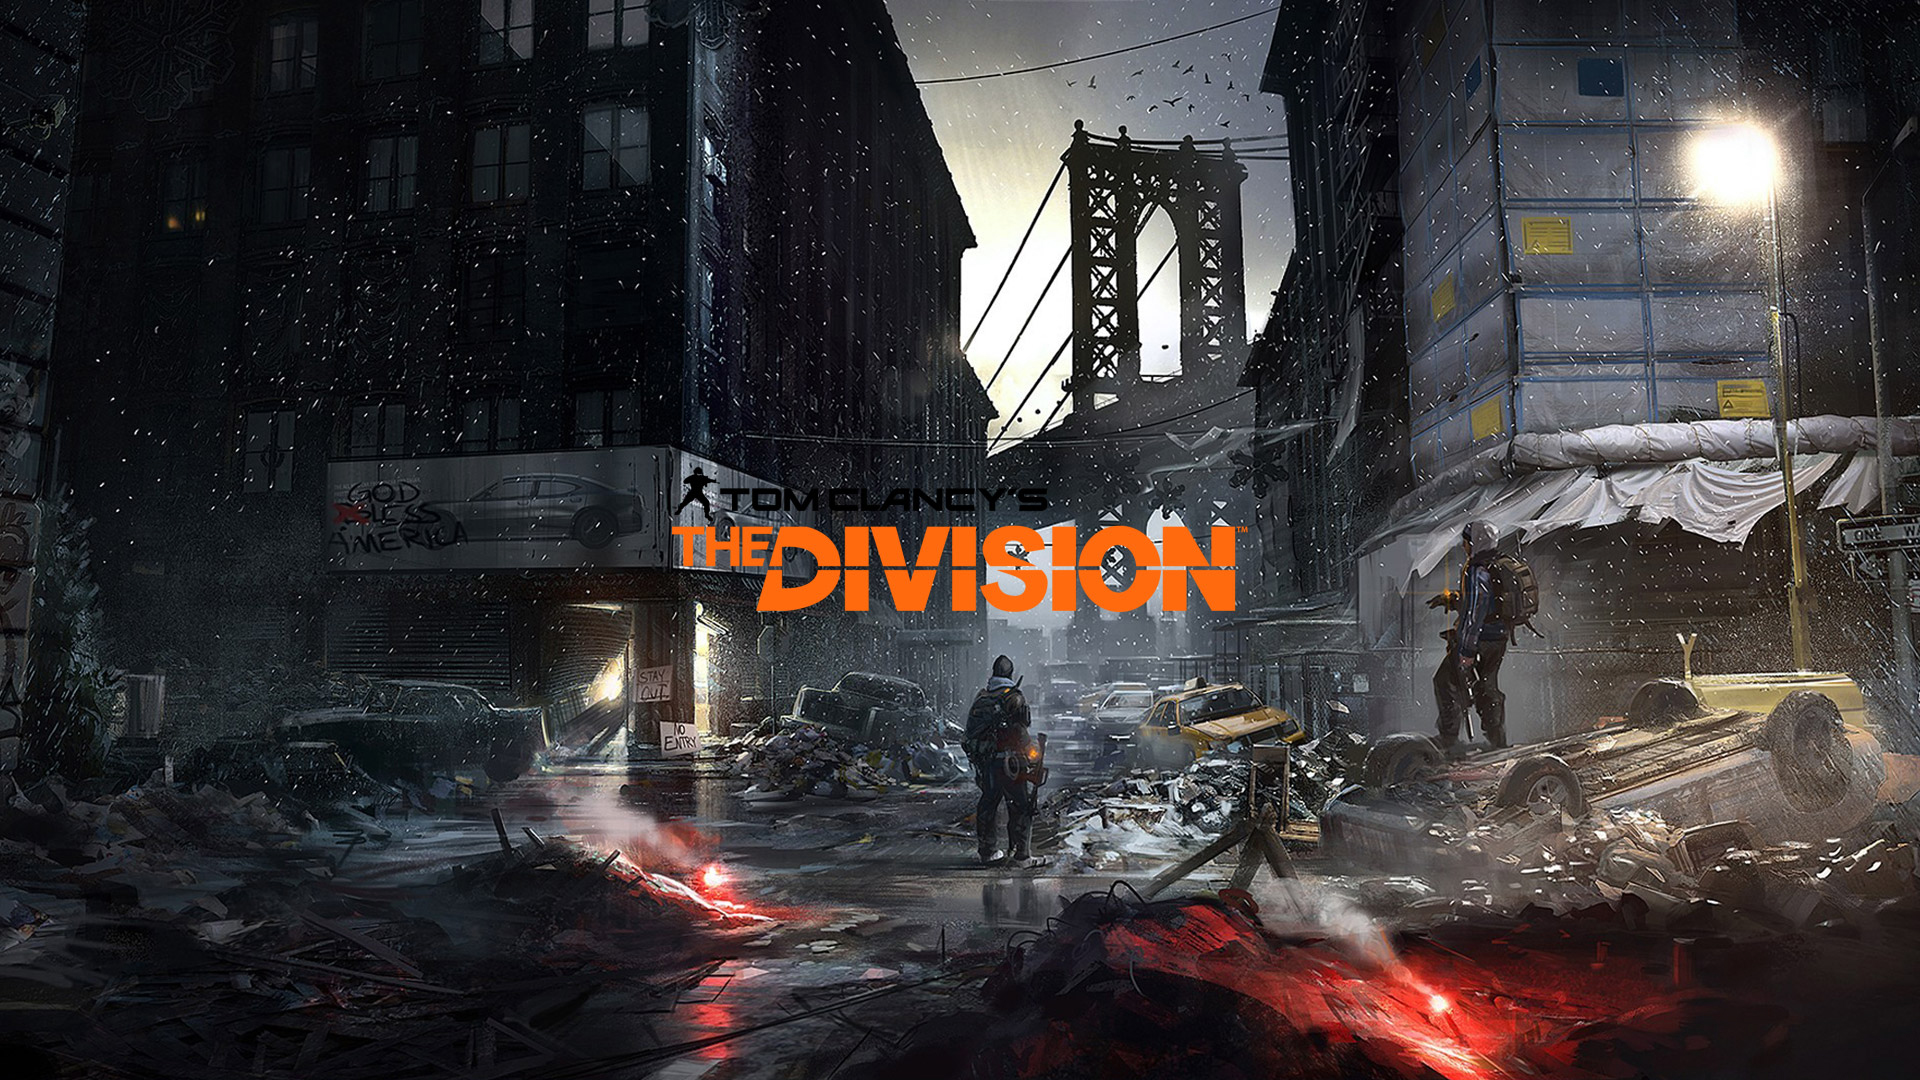 Tom Clancys The Division Art HD Wallpaper 1920x1080